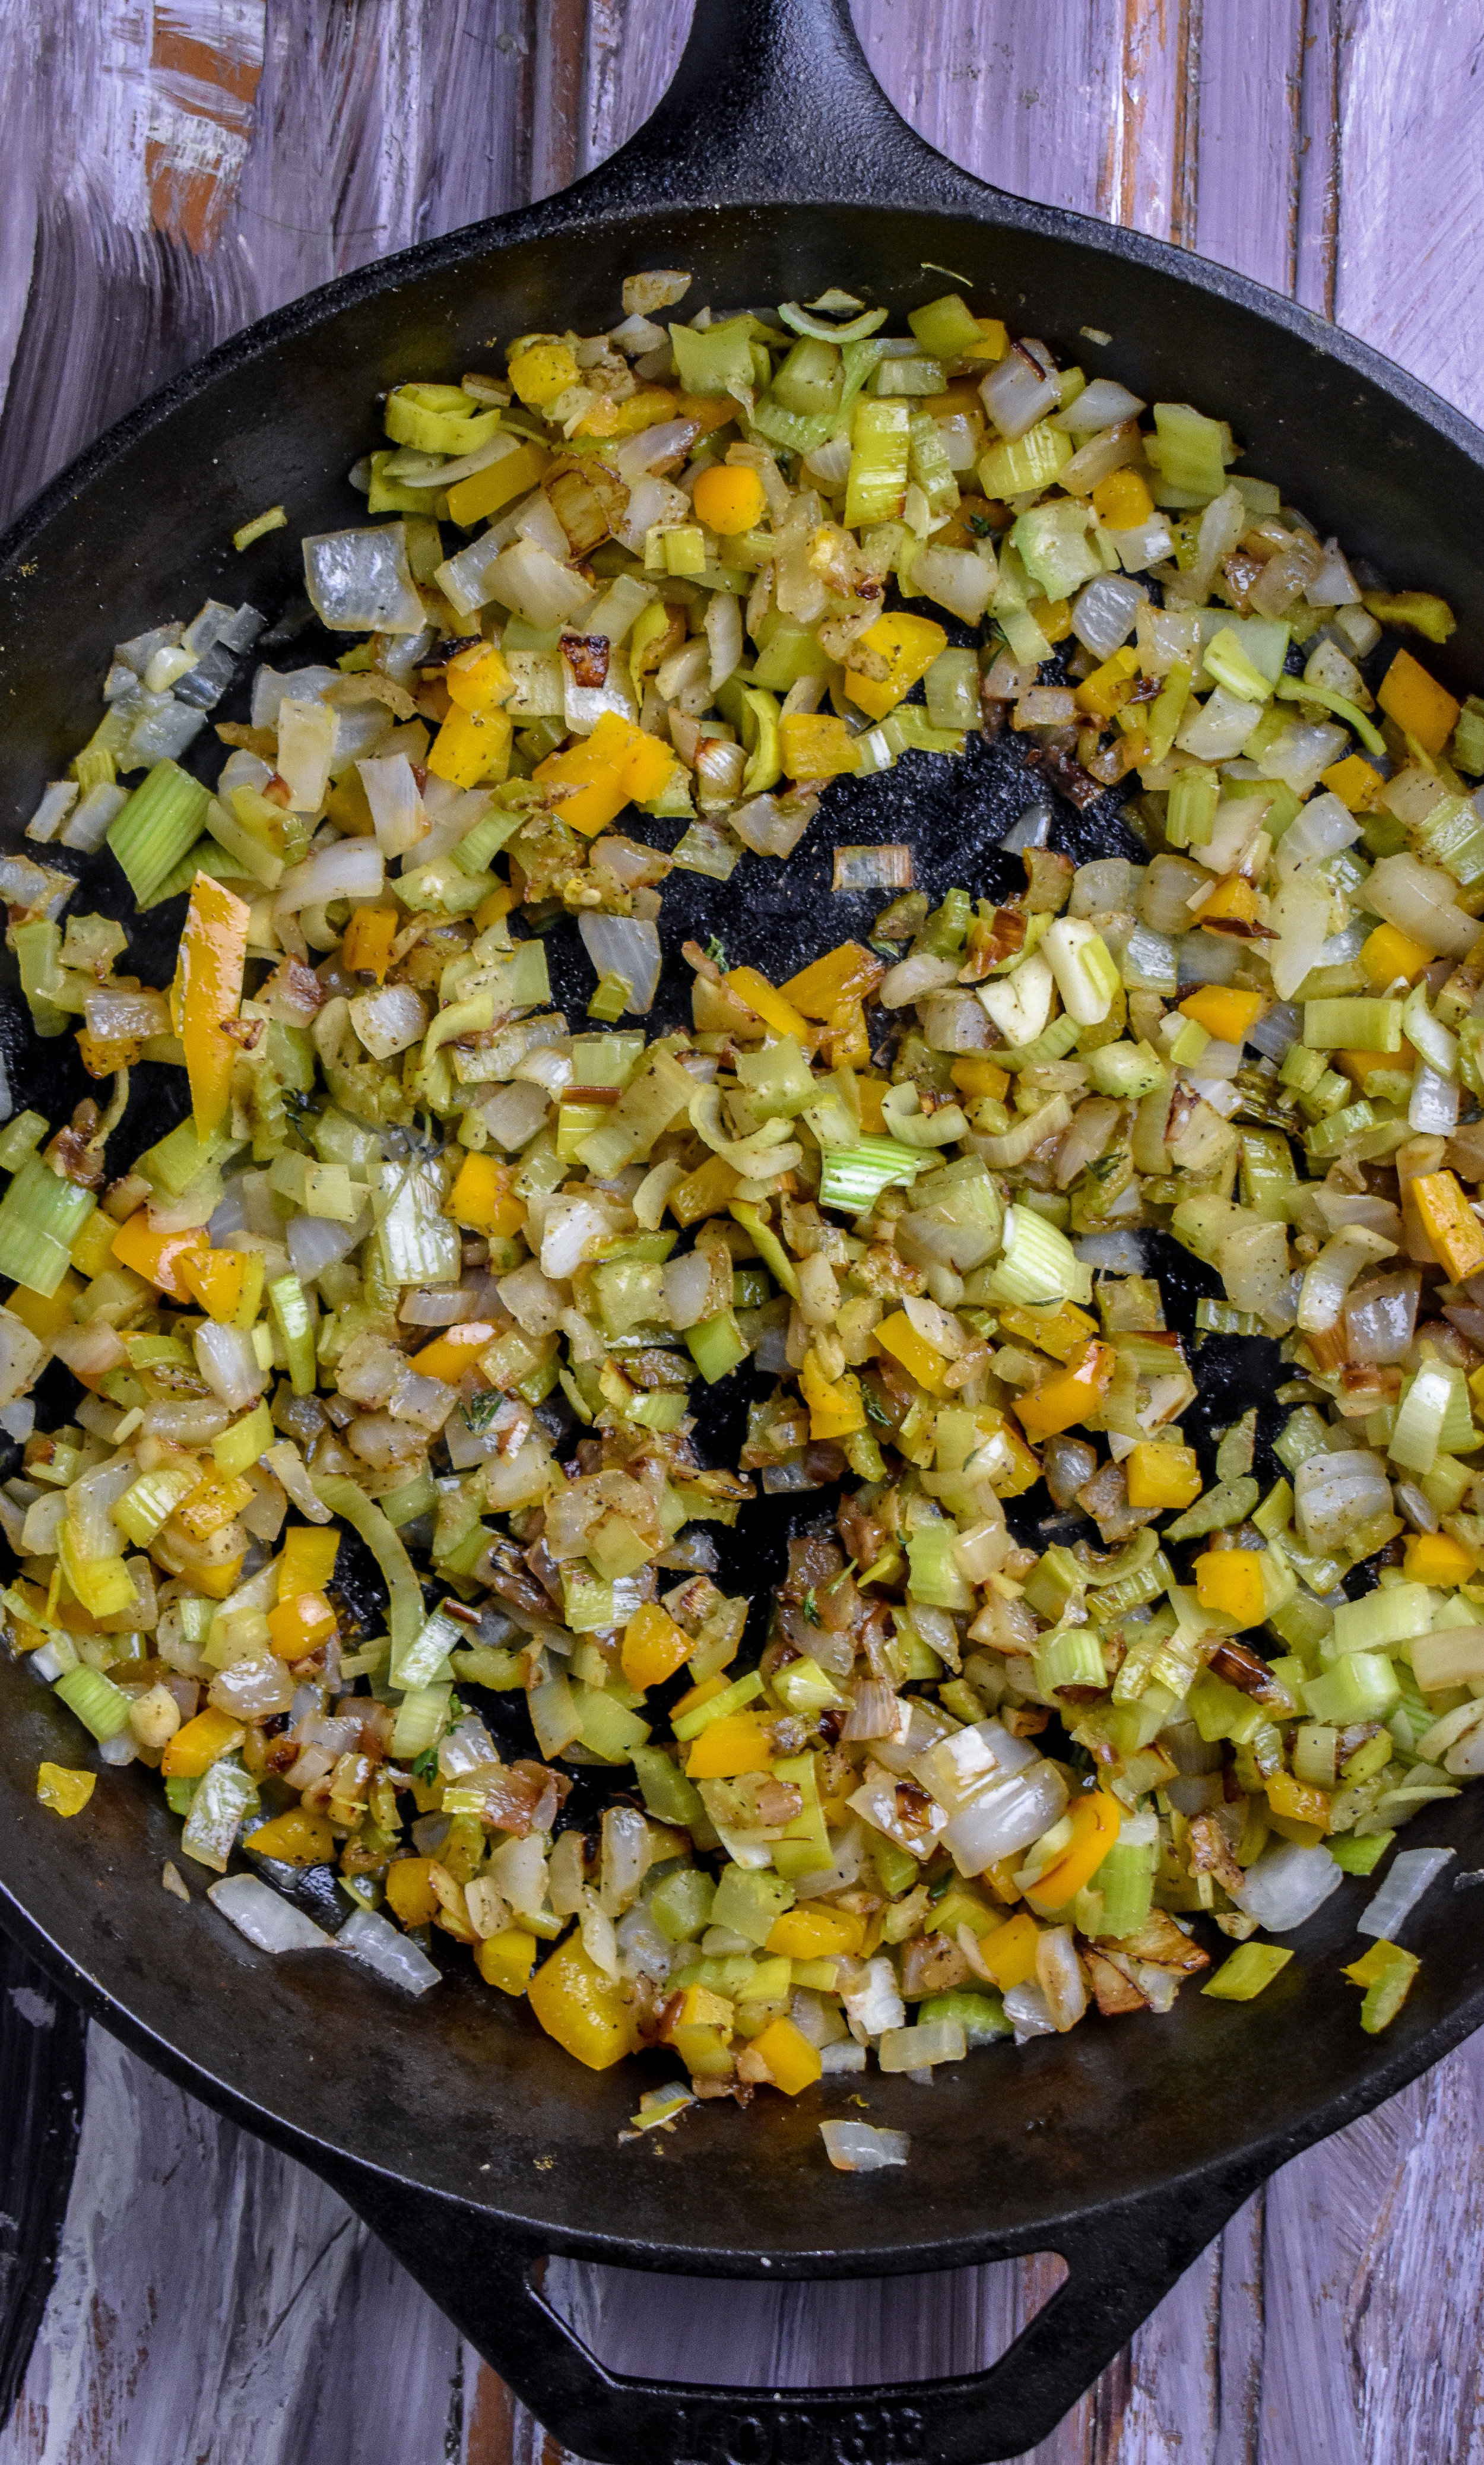 2. While rice cooks, add shallots + garlic to a castiron or large frying pan with poblano pepper or orange bell pepper (pictured above). Cook over medium heat for 2-3 minutes until onion starts to soften. Add in leeks + celery and cook another 5-6 minutes.